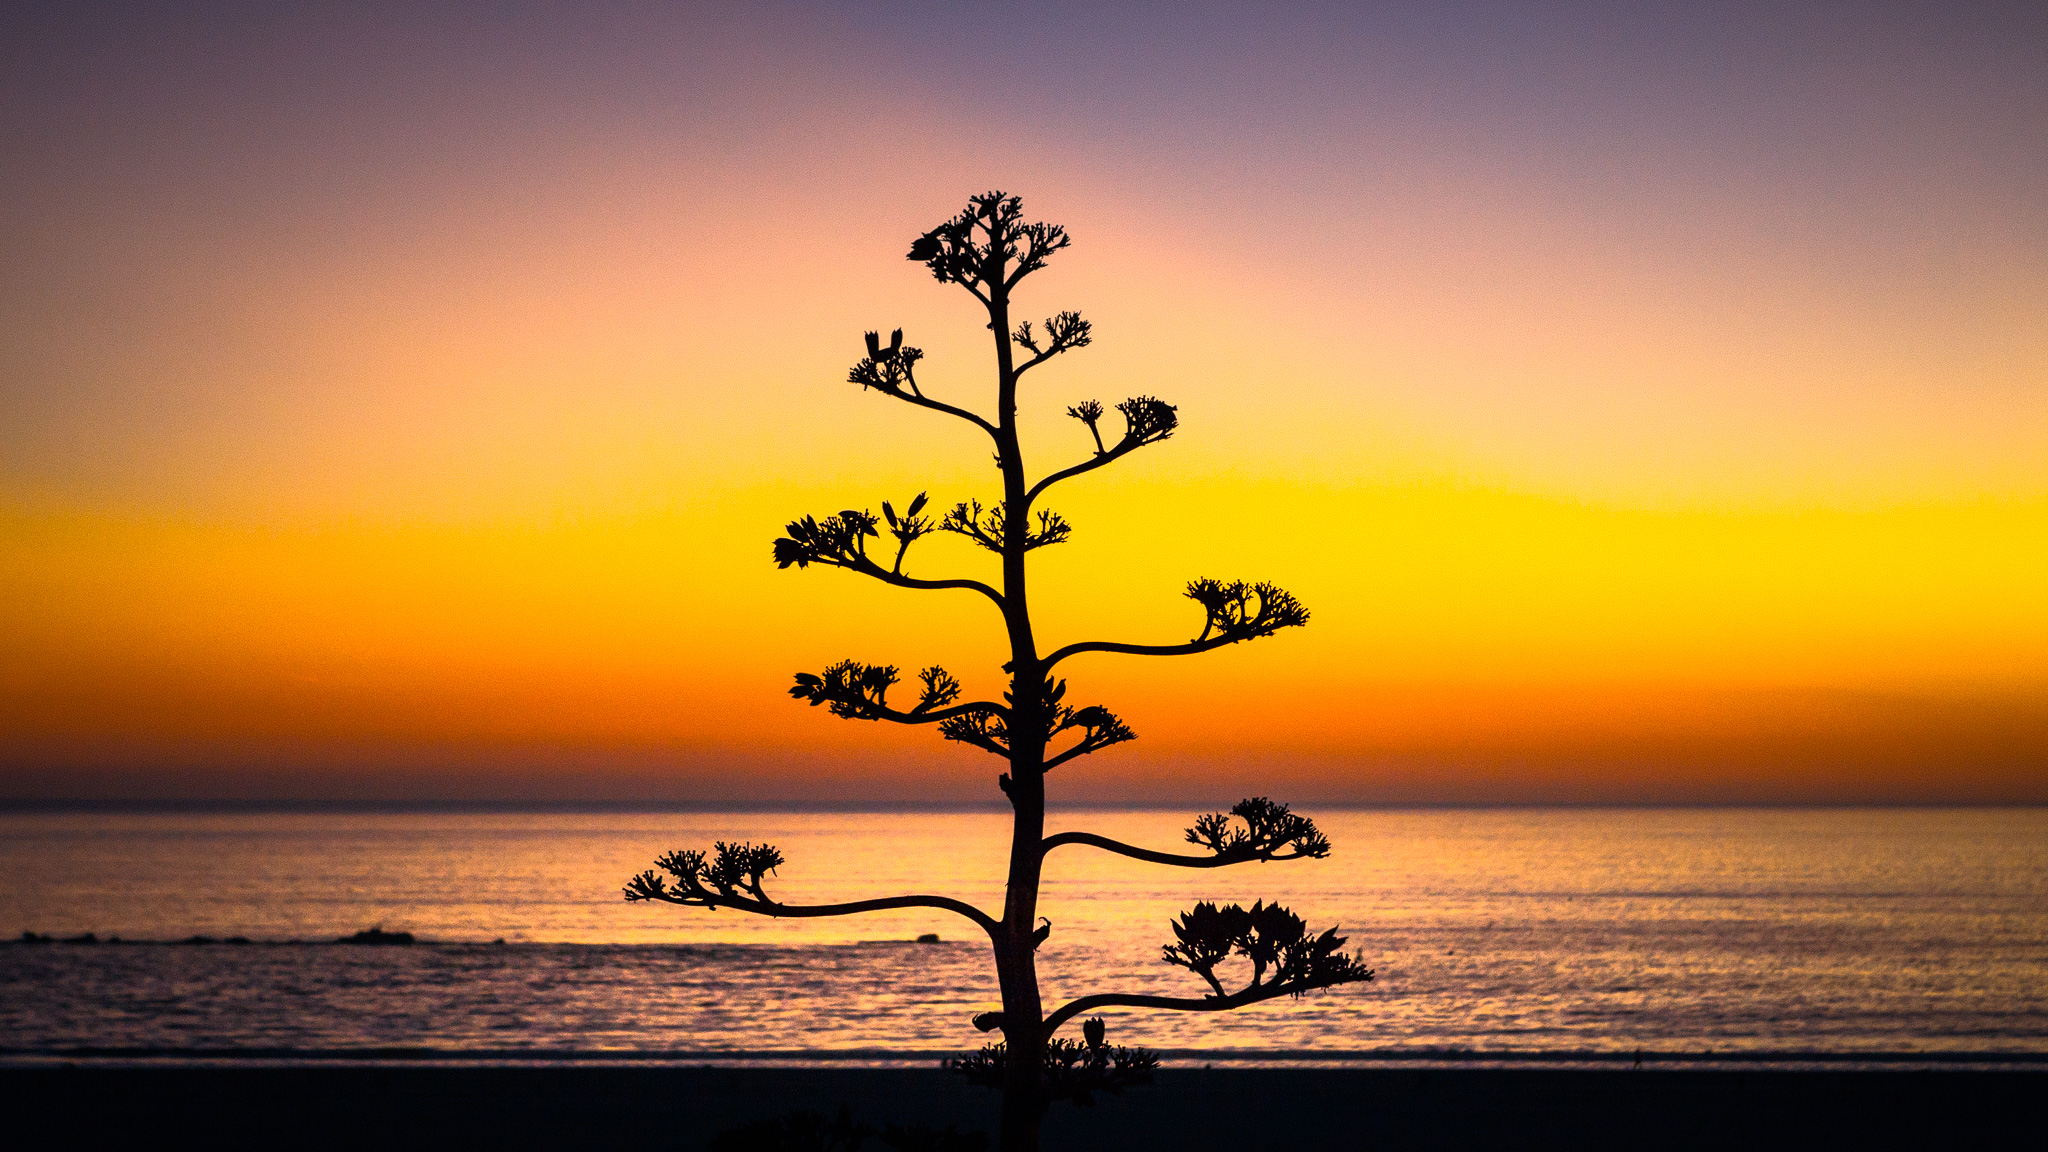 Agave In Bloom At Twilight, Palisades Park, Santa Monica